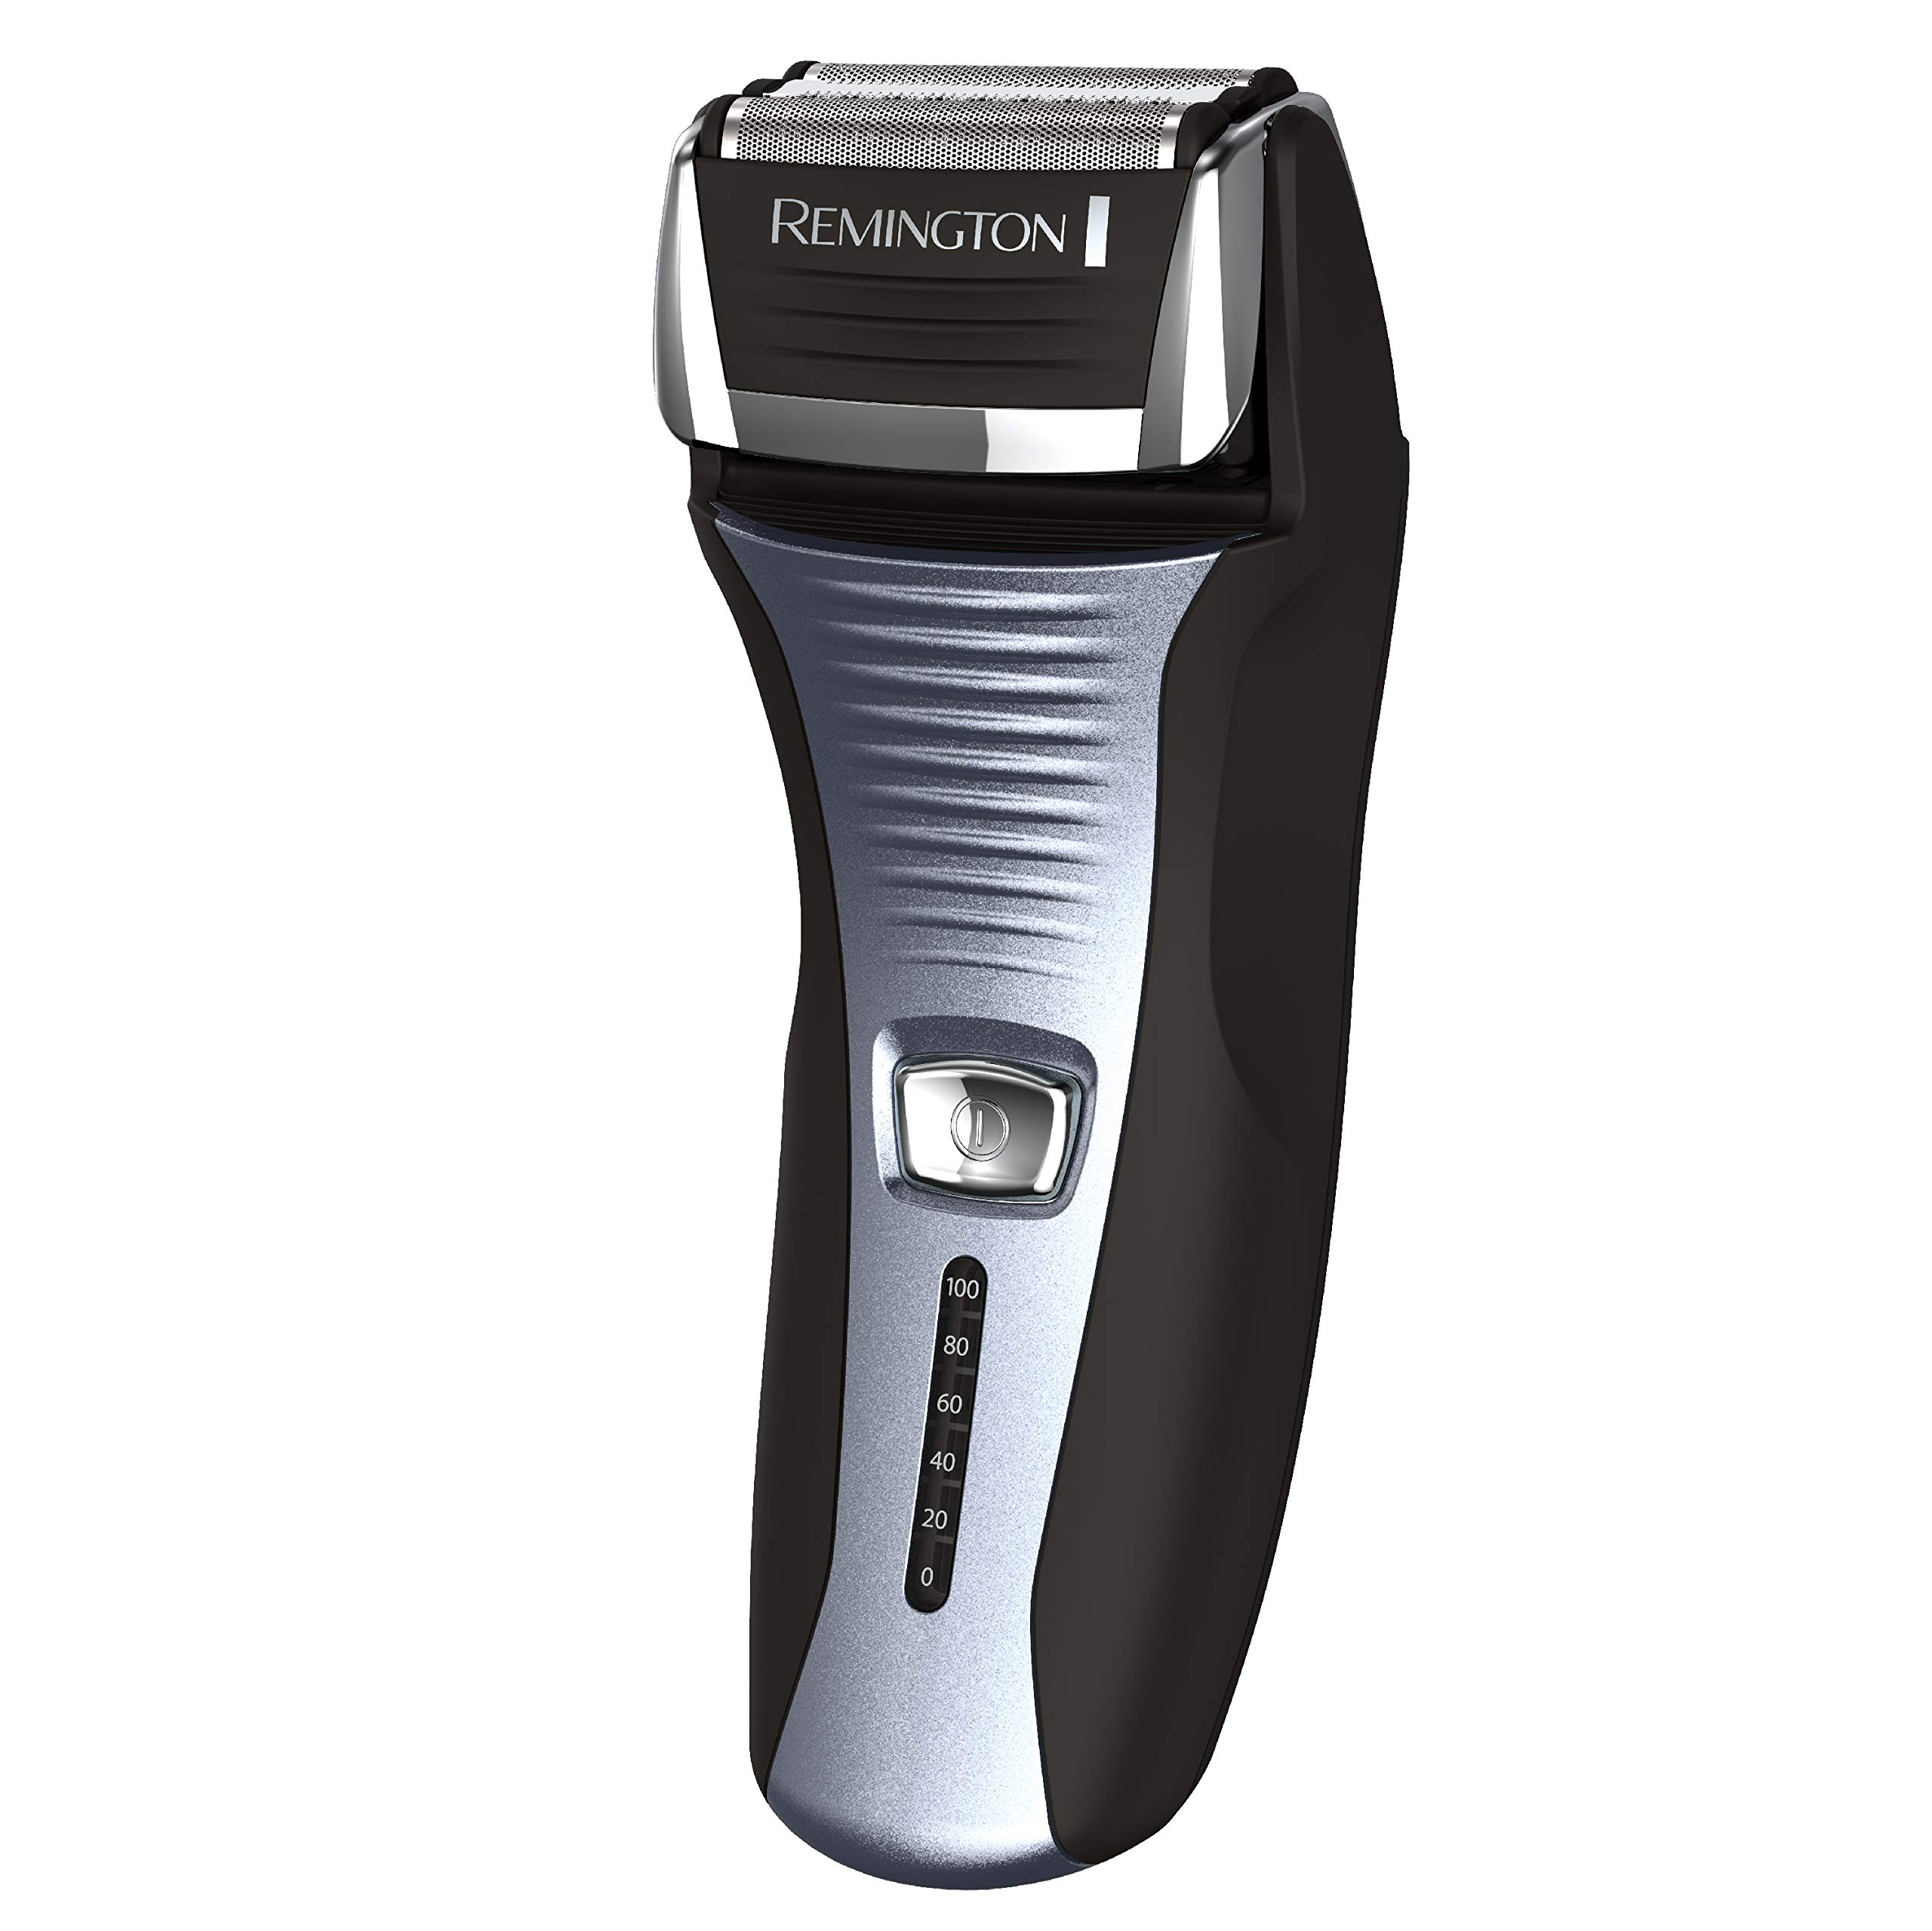 Remington F5 5800 Shaver Electric Razor